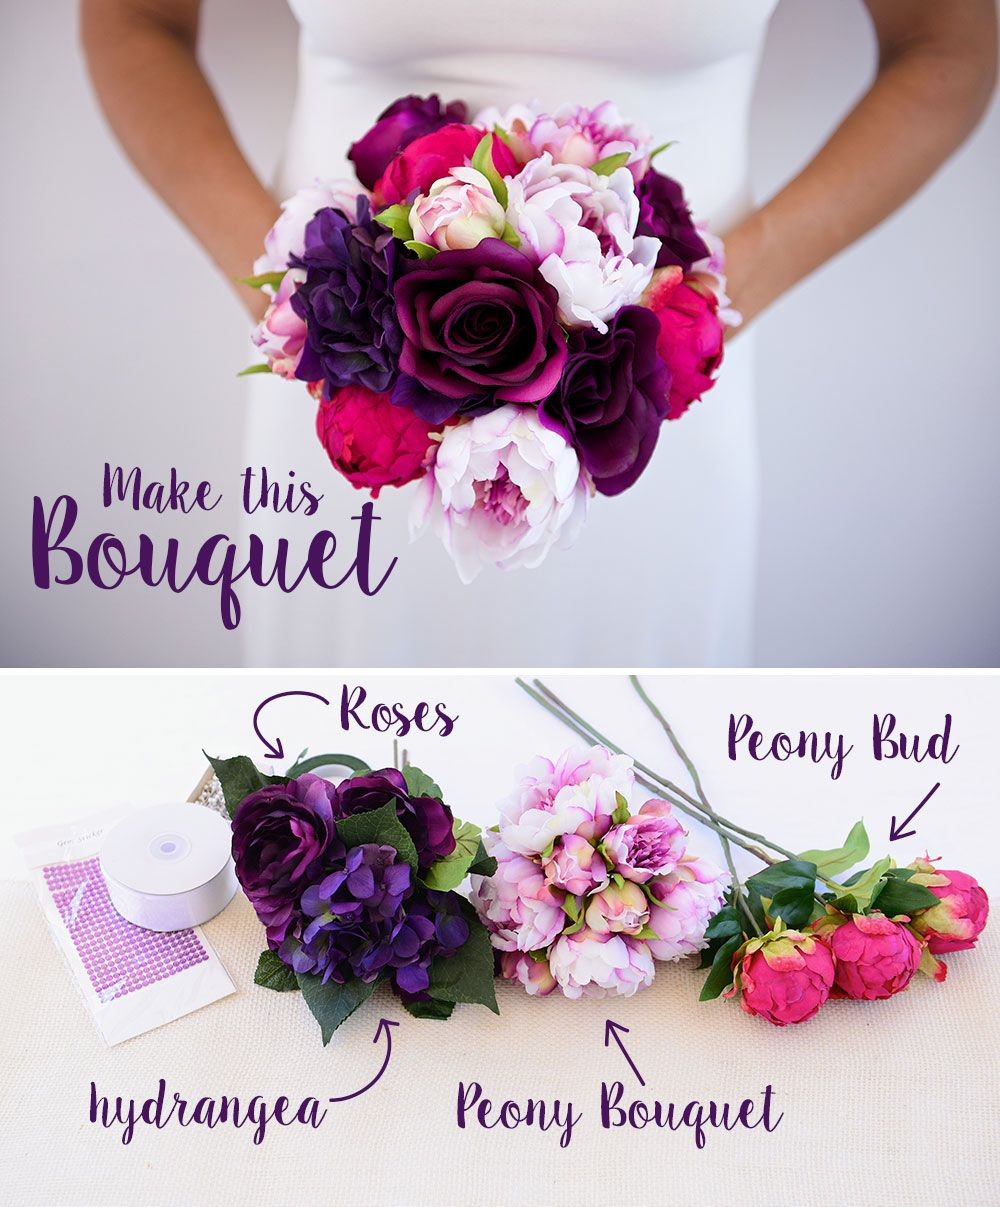 How To Make A Bouquet Video Silk Flower Bouquets Flower Bouquets